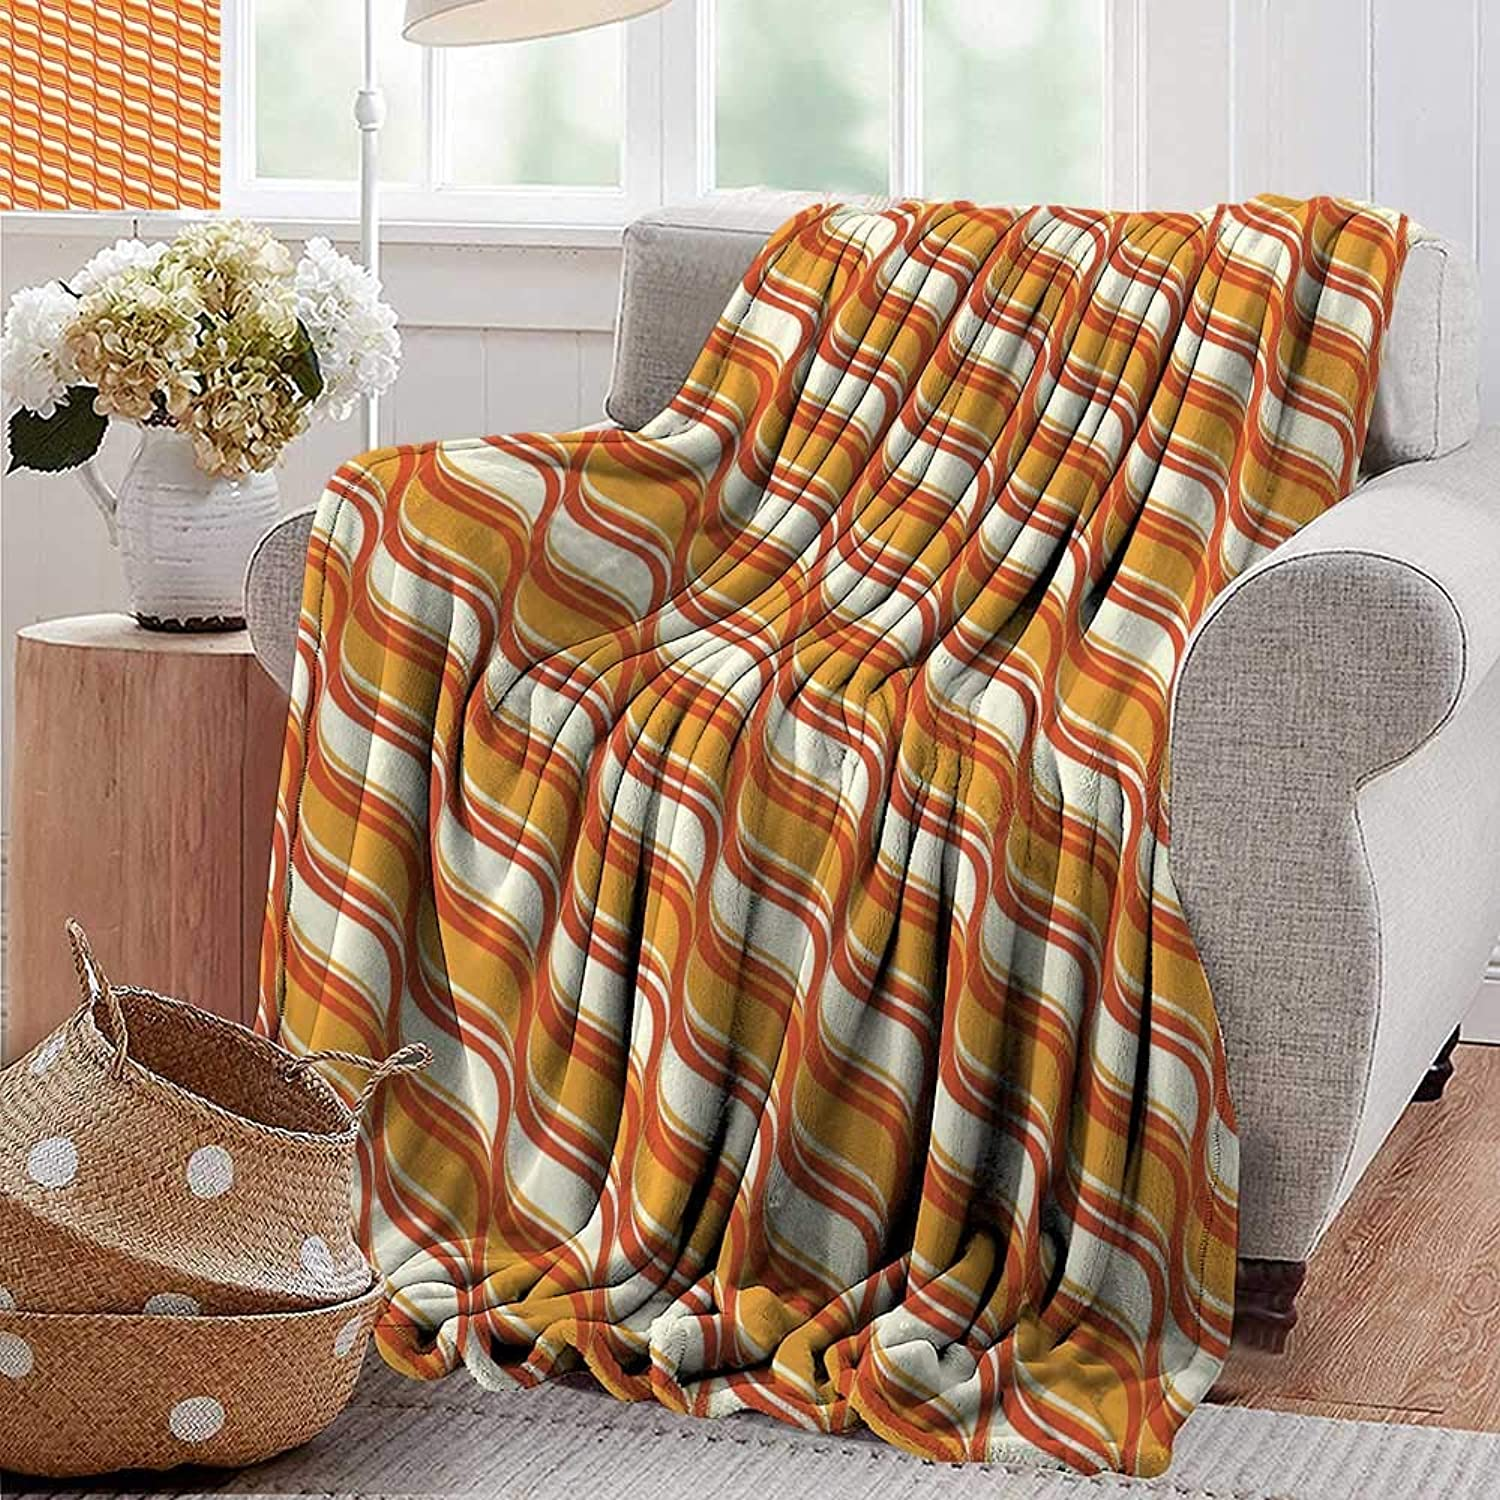 PearlRolan Weighted Blanket for Kids,Geometric,Ornamental Waves Composition Various Wavy Lines in Earthen Tones Classical,orange Cream,Weighted Blanket for Adults Kids, Better Deeper Sleep 50 x70